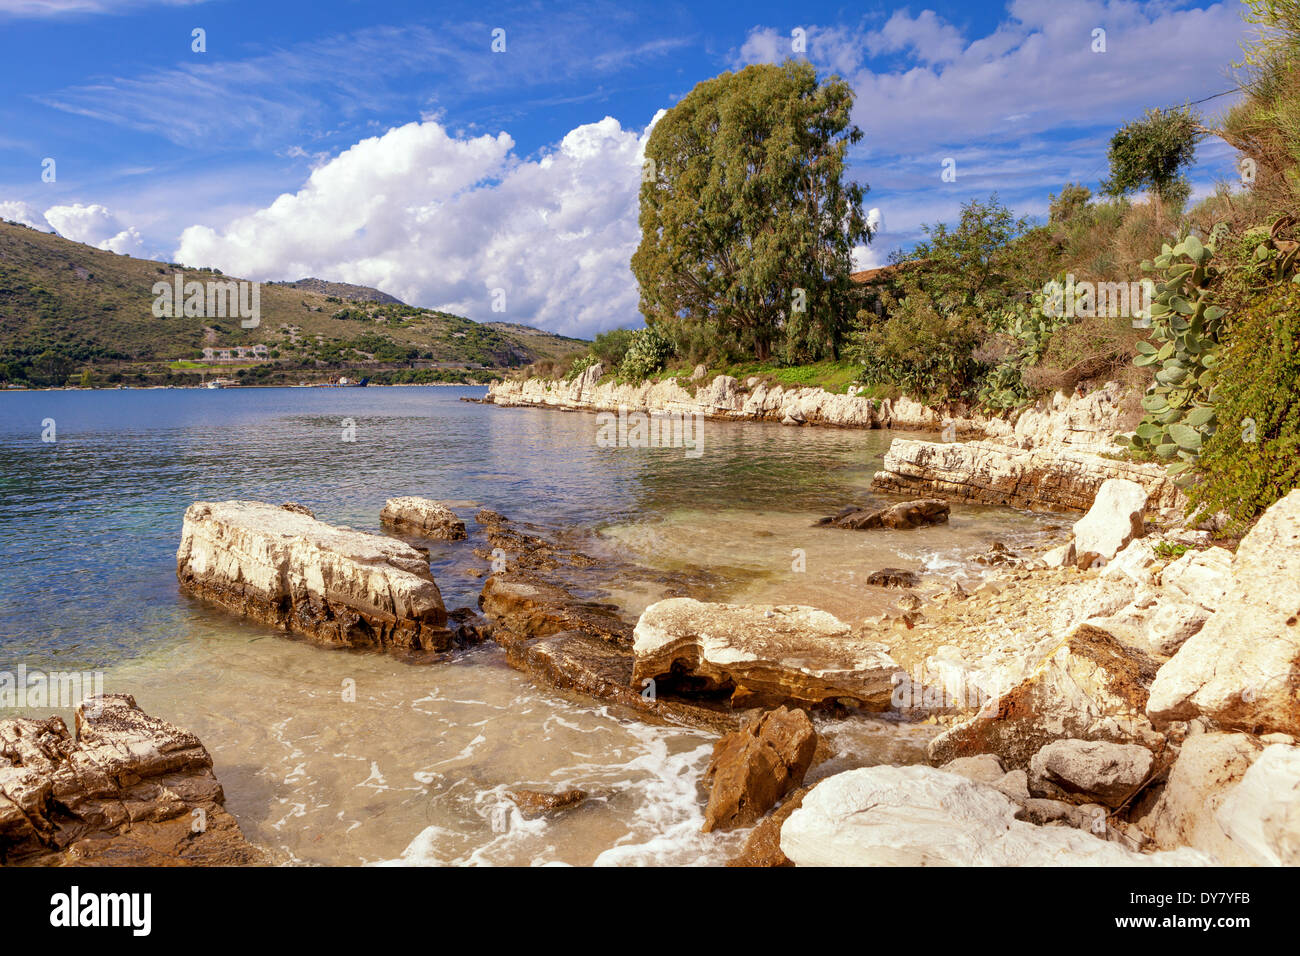 View of a picturesque cove on the Kassiopi peninsula on Corfu, Greece - Stock Image